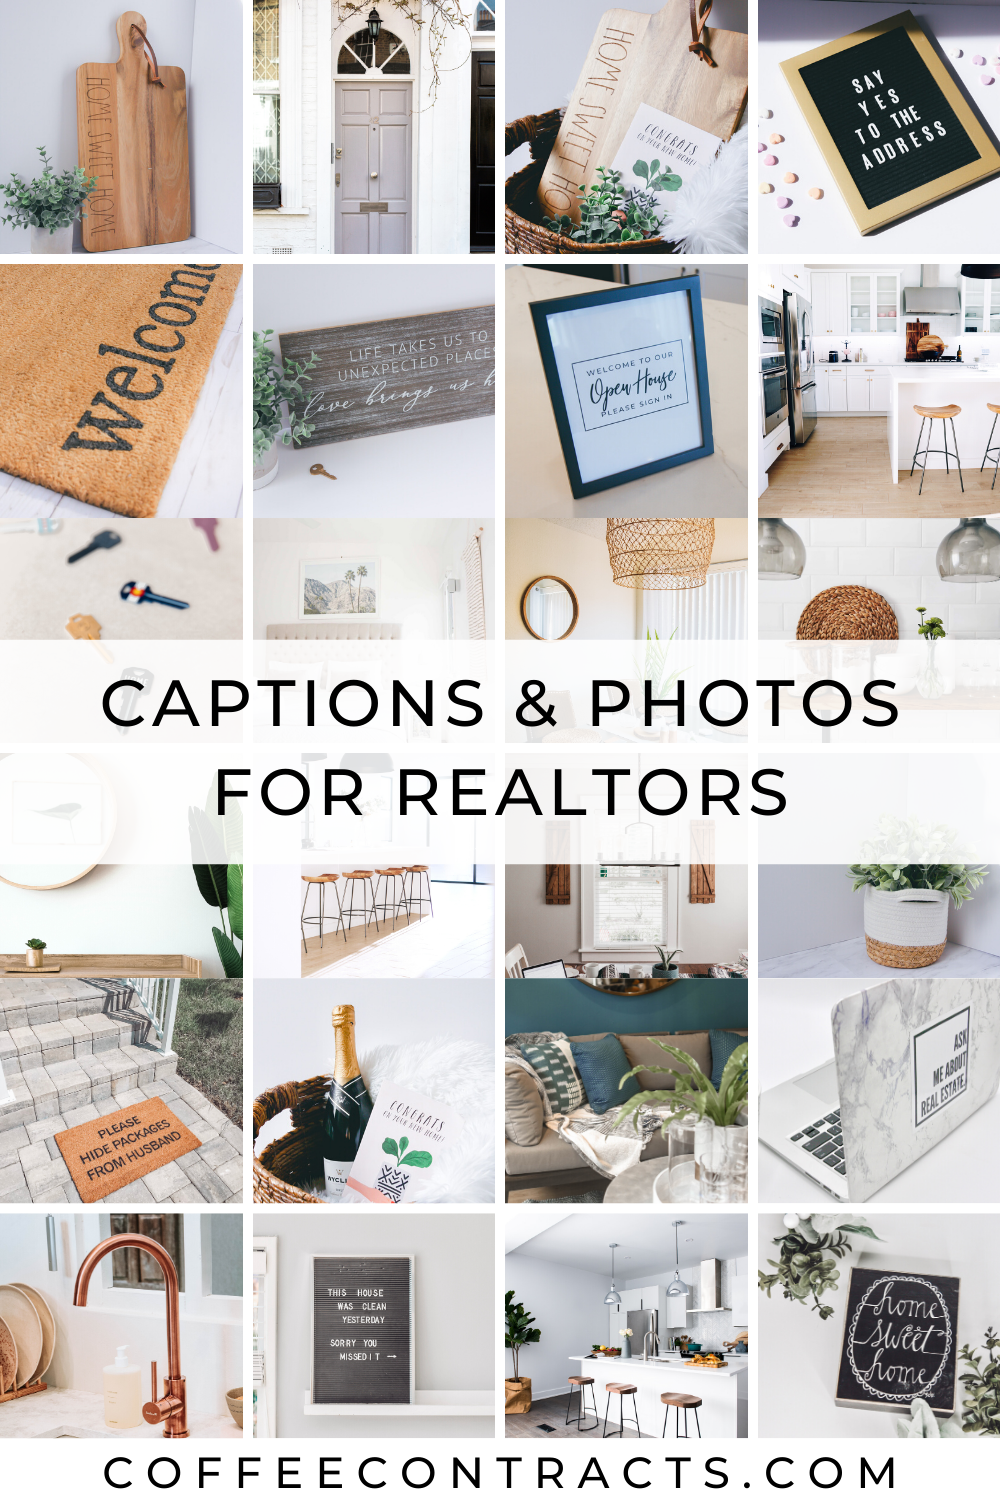 Instagram Photos and Captions for Realtors